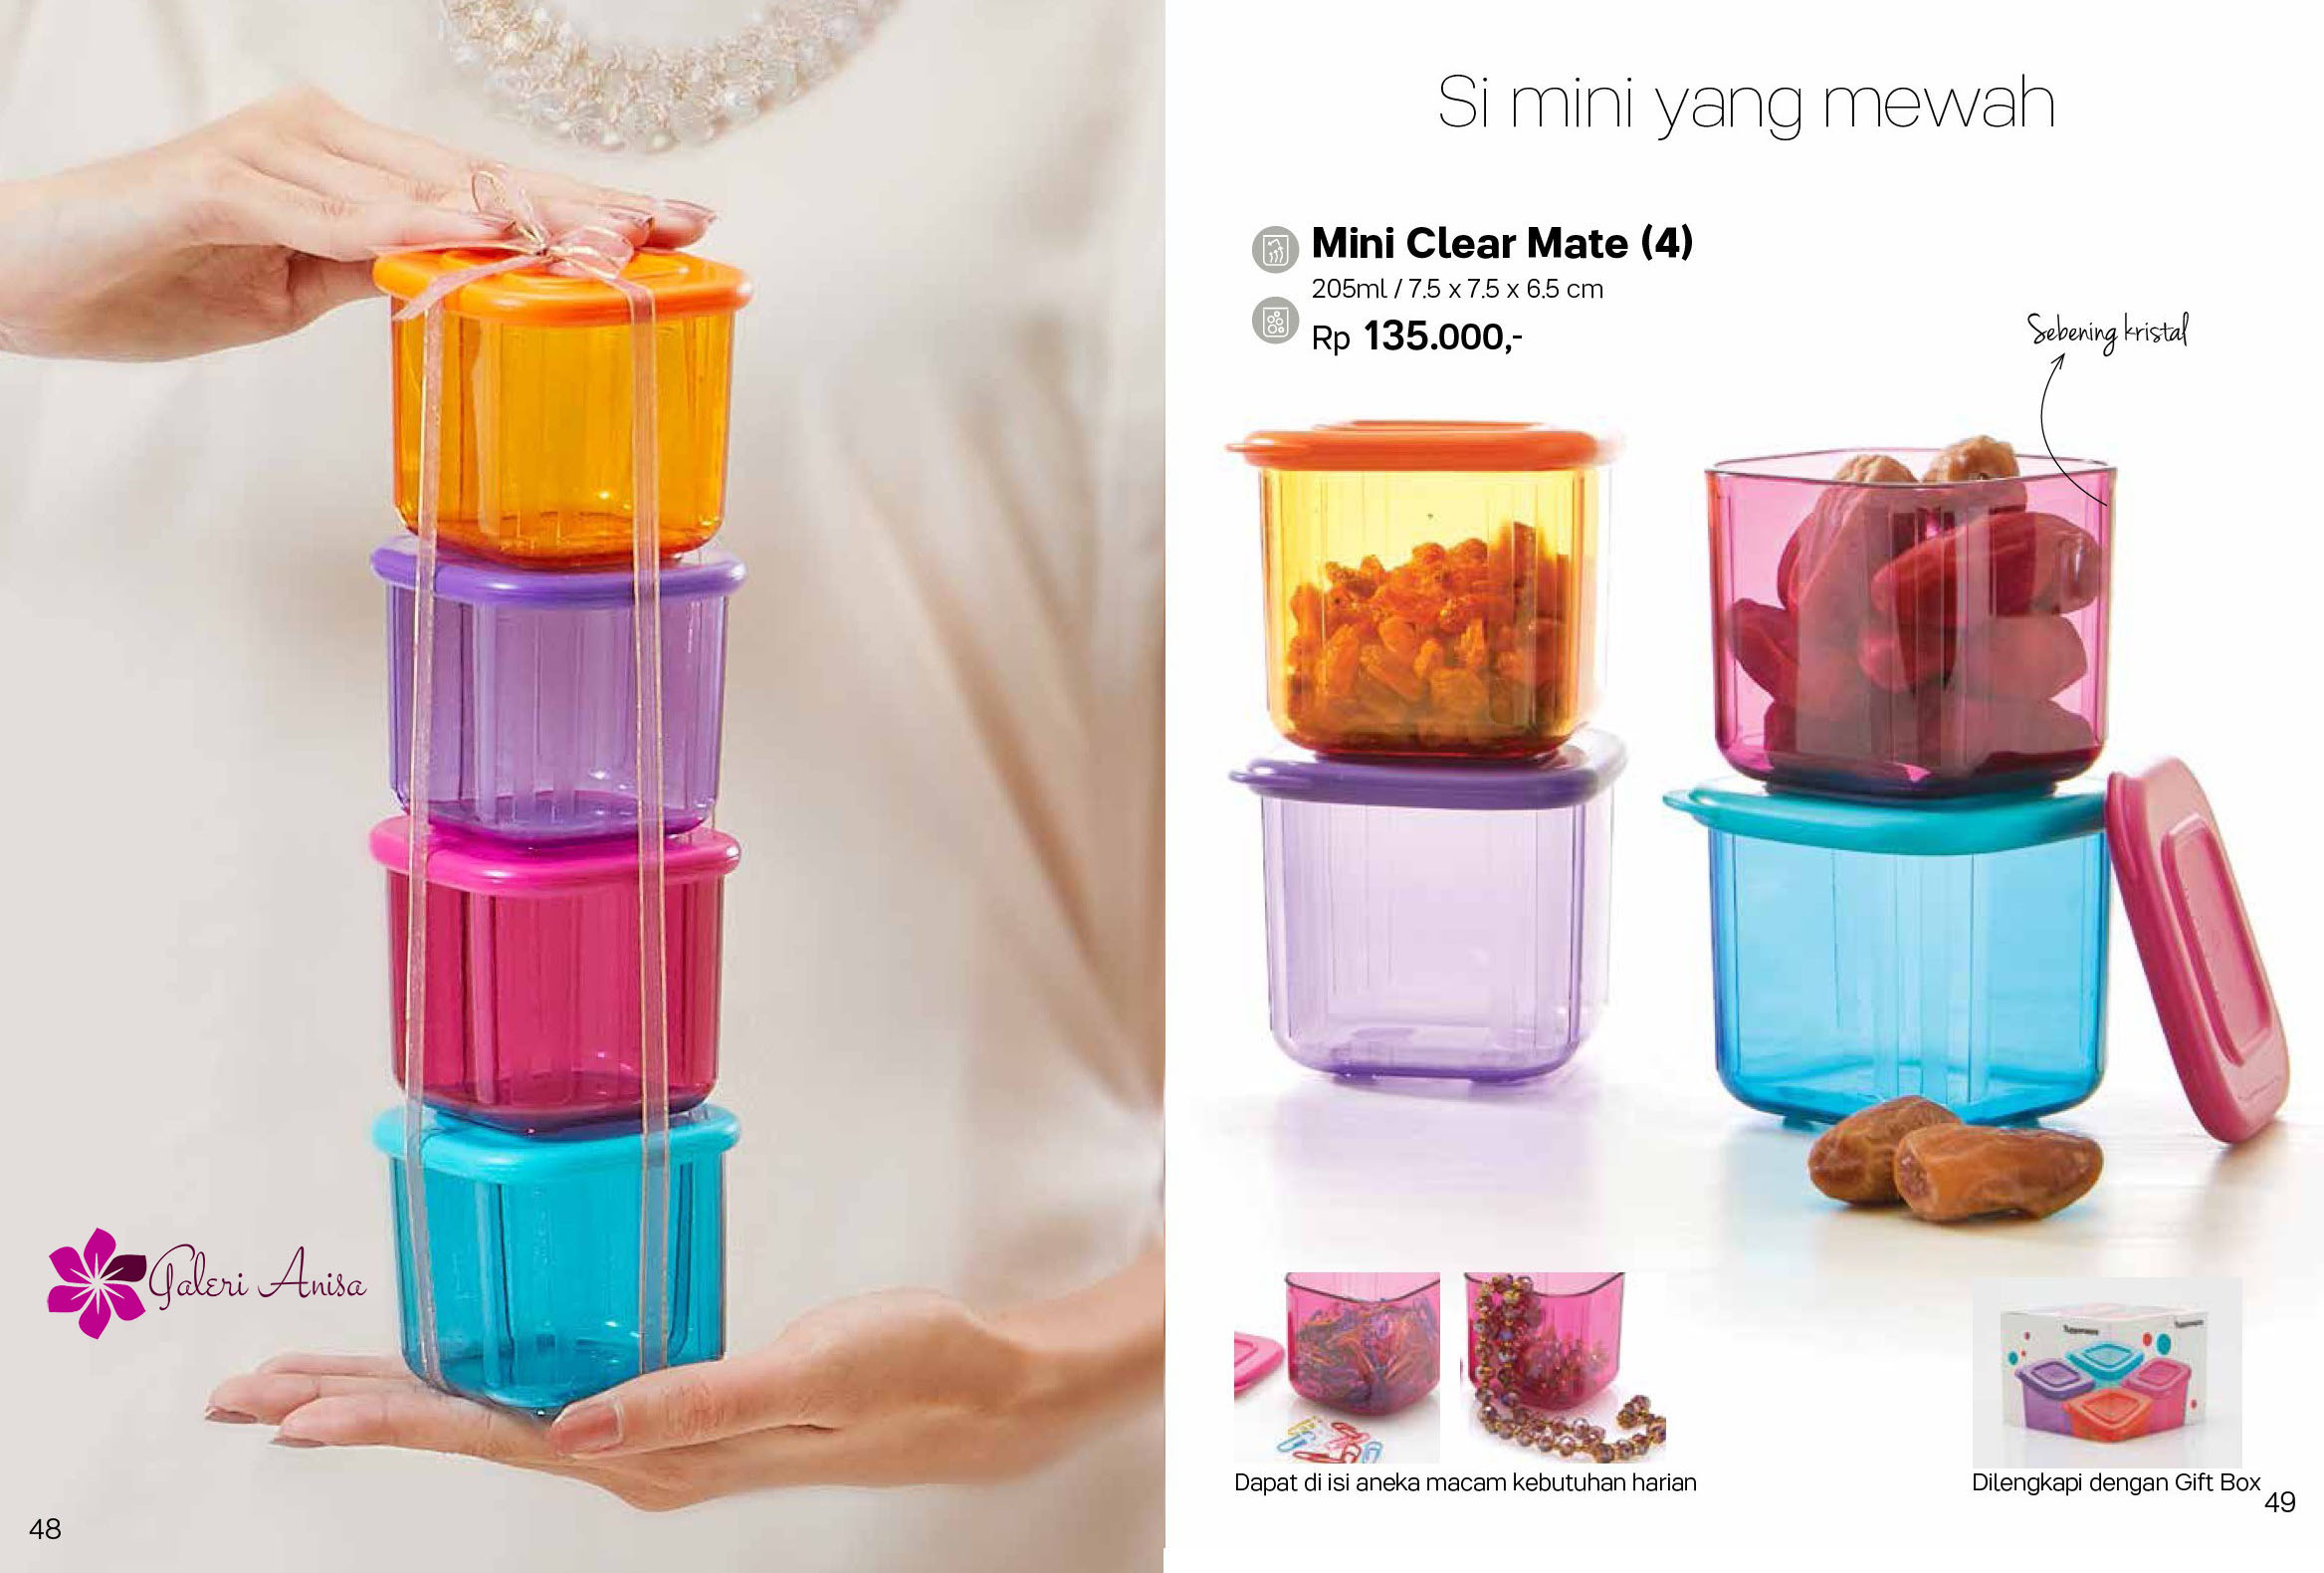 Mini Clear MateTupperware Promo Mei 2017 24